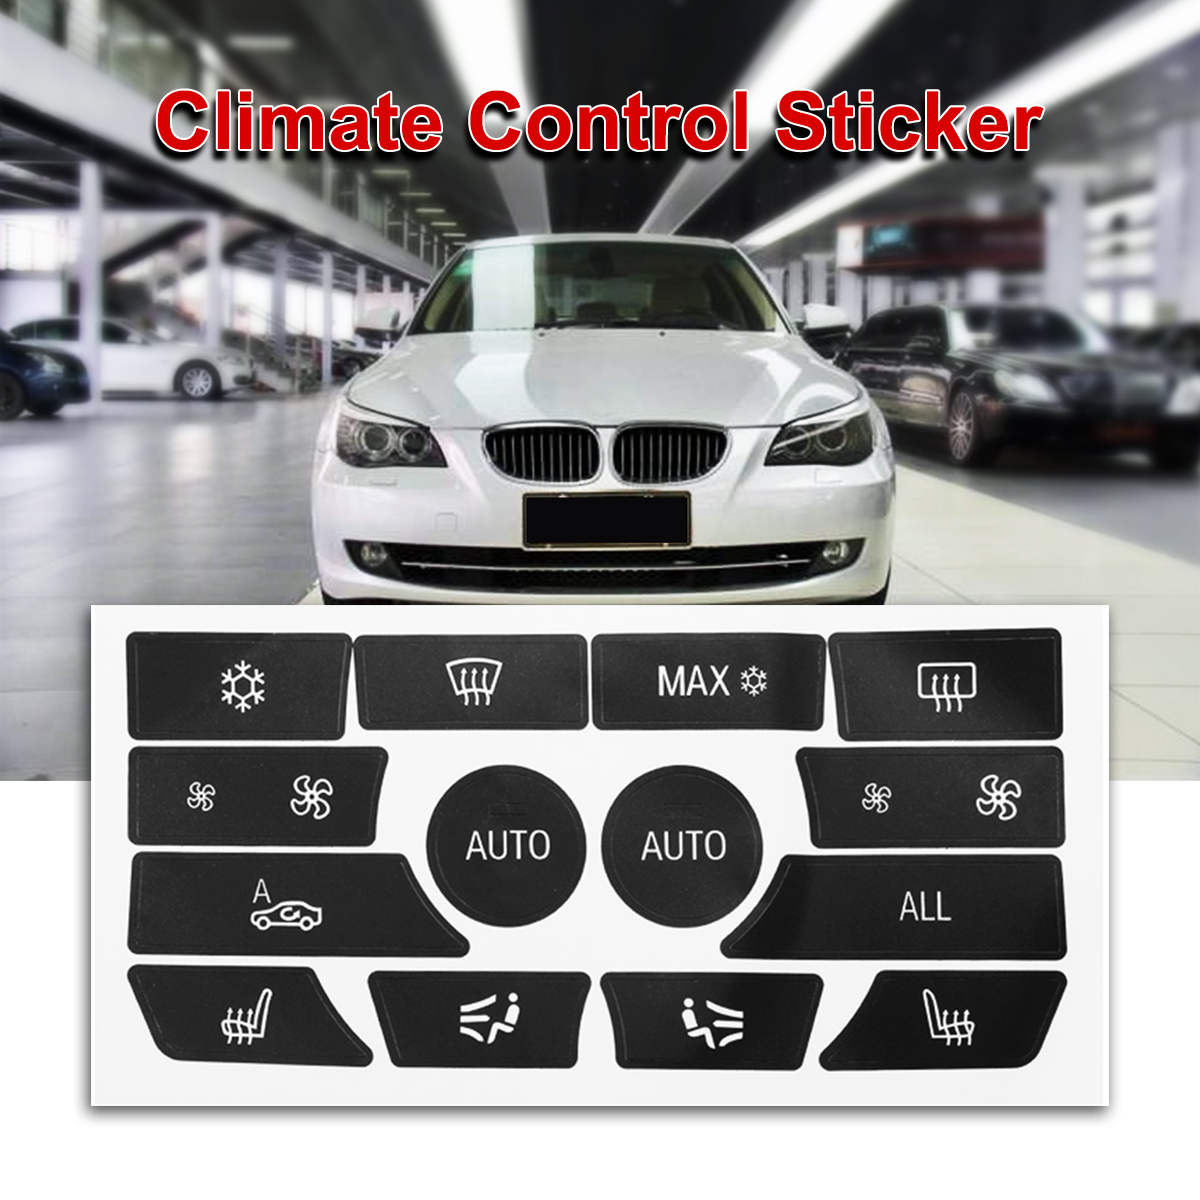 AUDI A3 Clima Panel Decals Stickers For Worn Button Knob Switch Repair